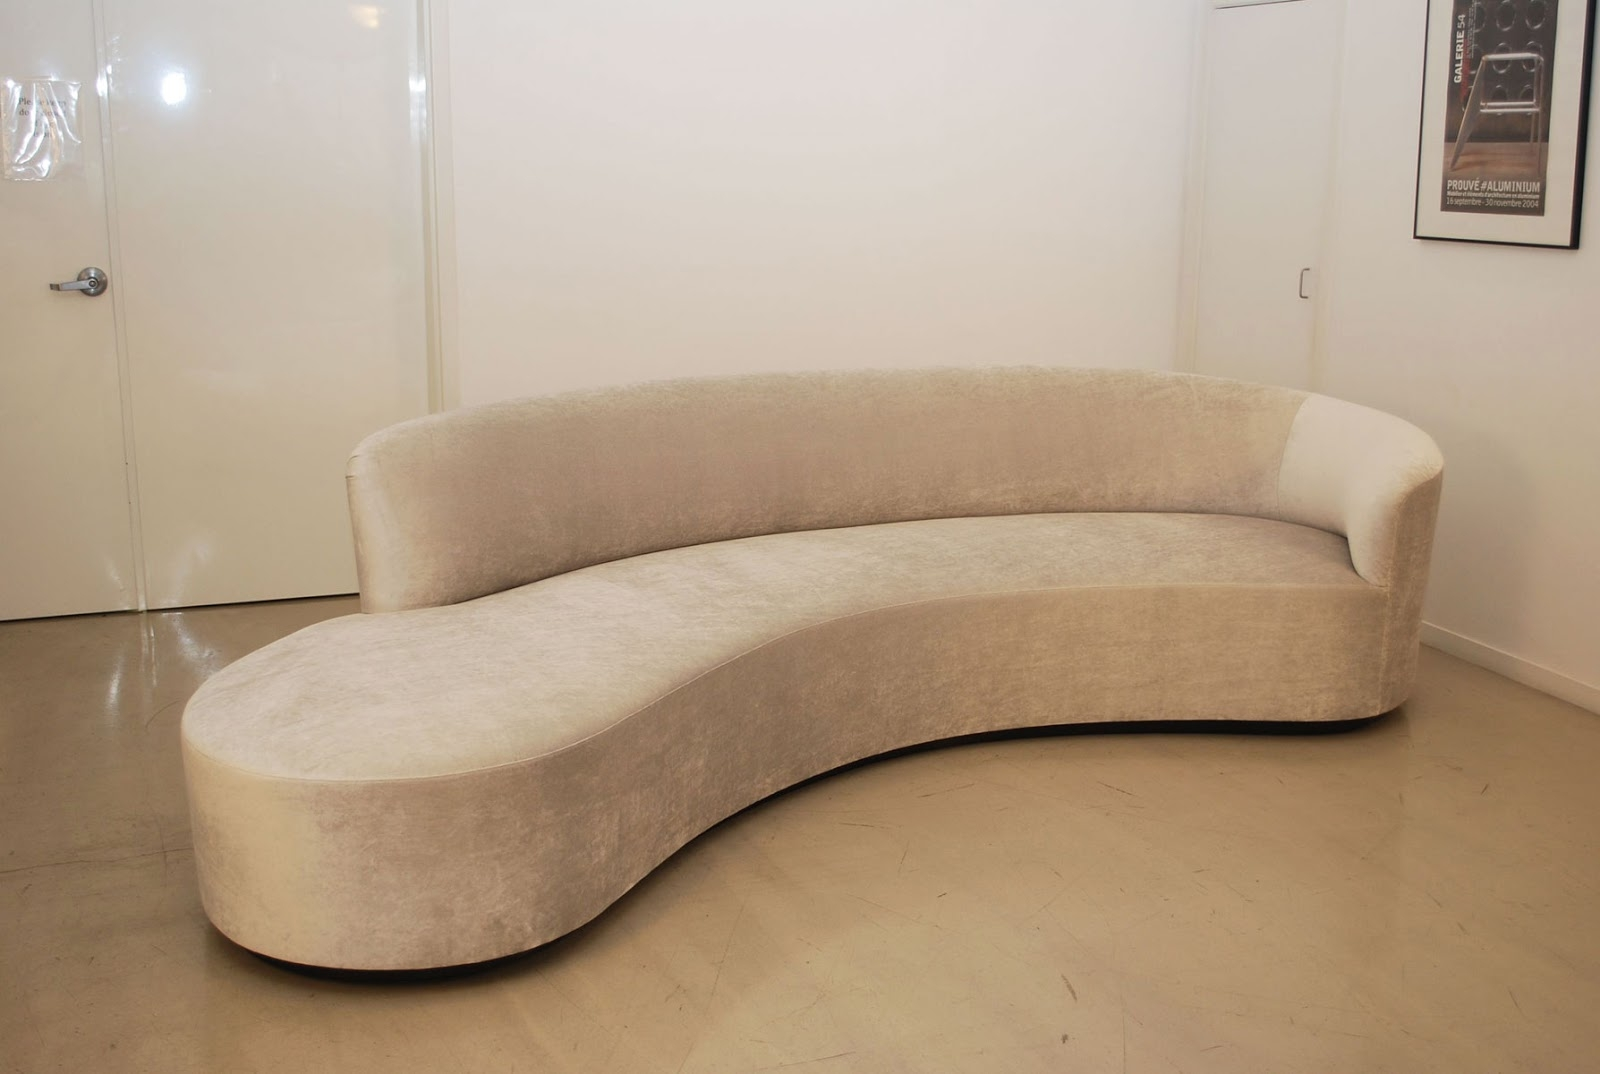 Contemporary Curved Sofa Hereo Sofa Pertaining To Contemporary Curved Sofas (#2 of 12)